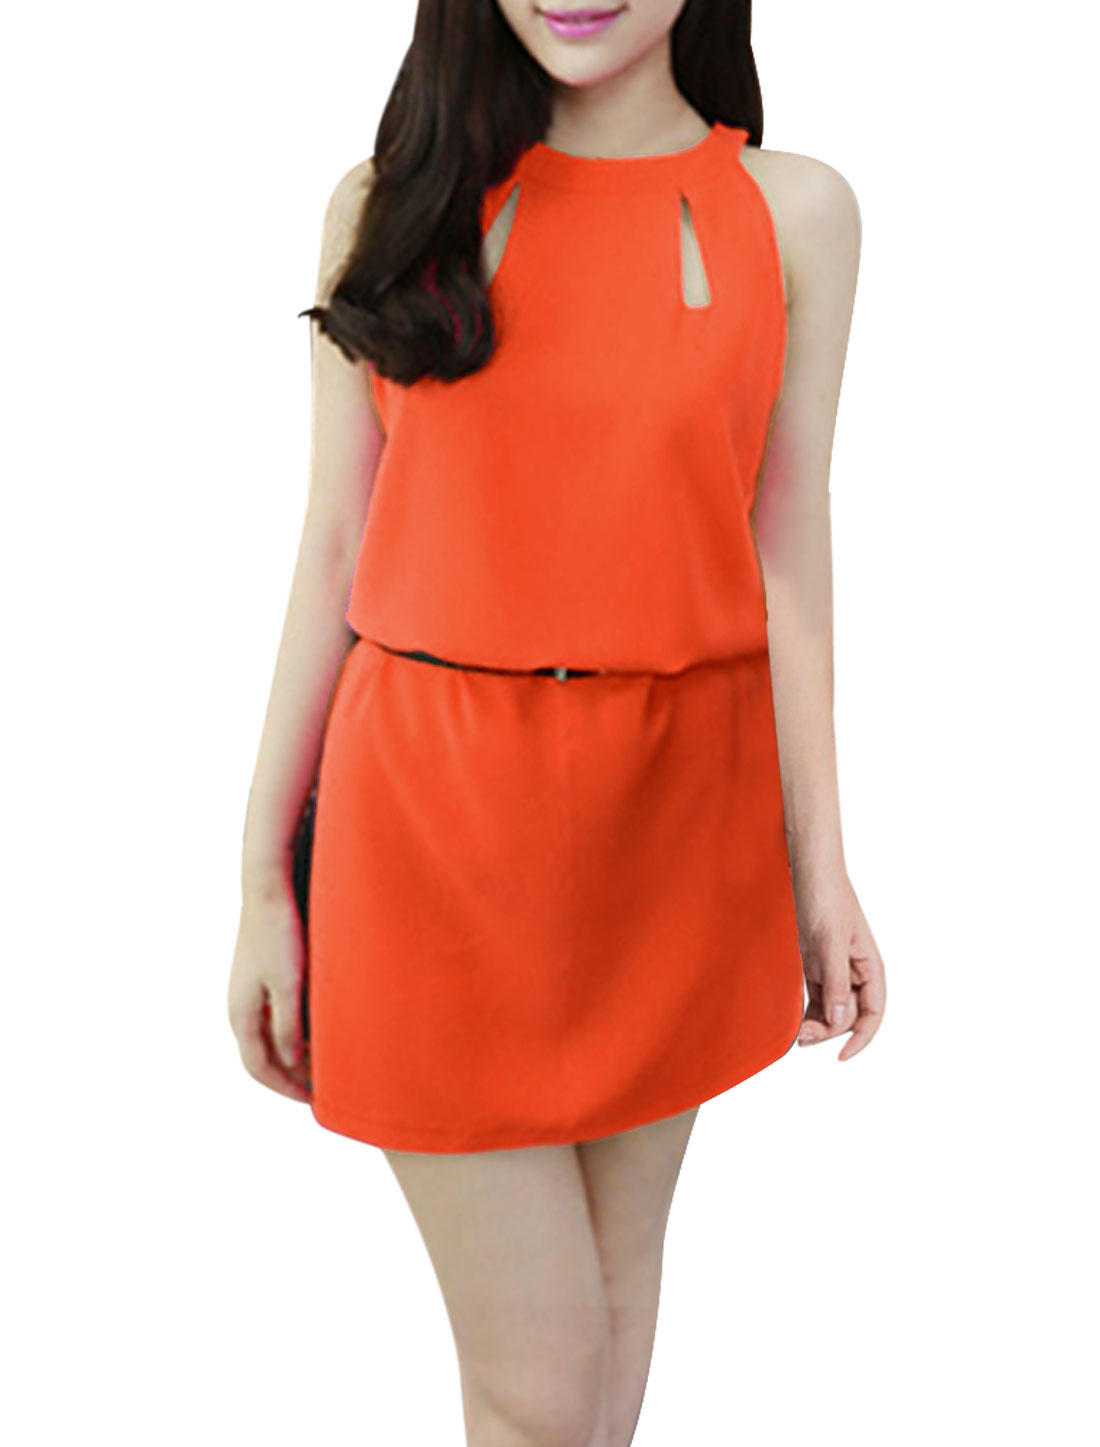 Women Zip Closure Back Sleeveless Belt Dress Orange XS